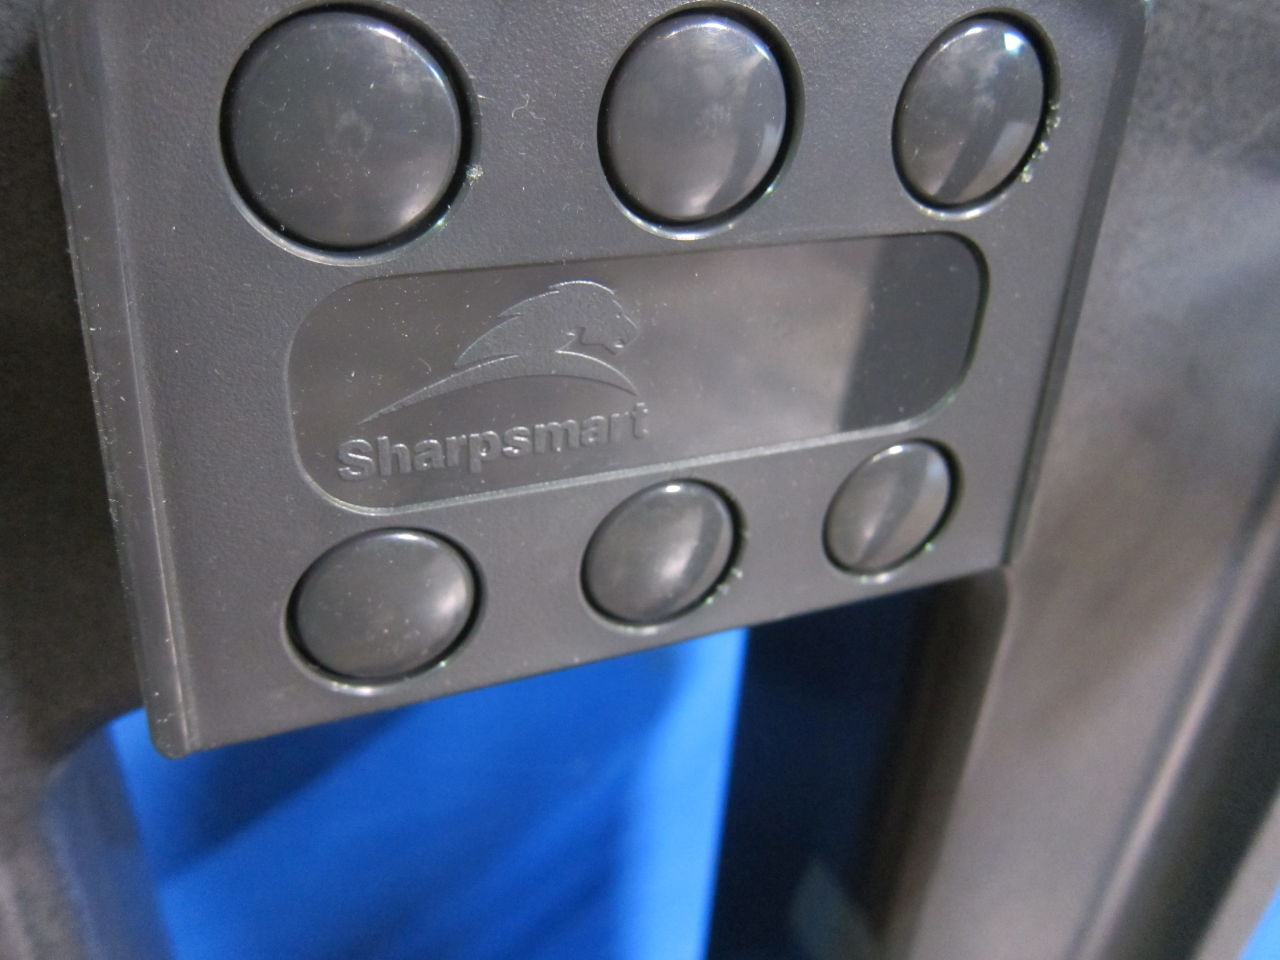 SHARPSMART  Cart